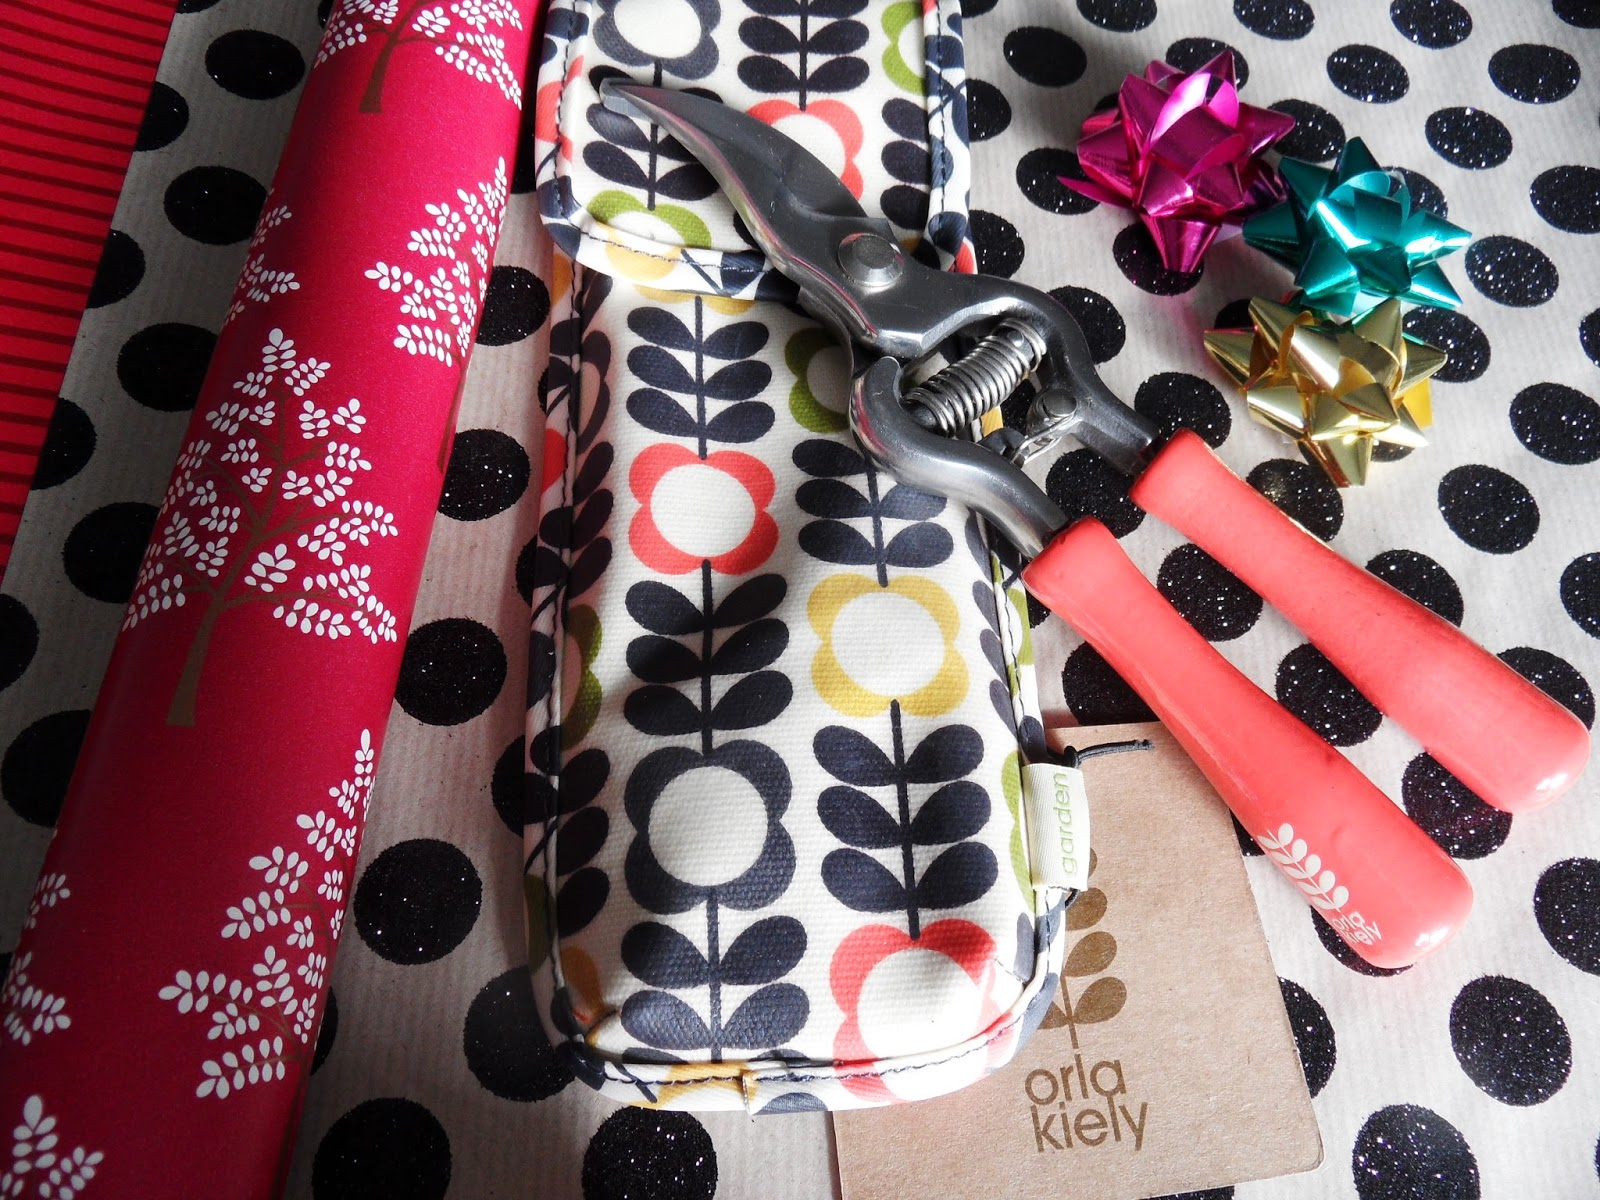 INTERNET GIFT STORE Orla Kiely Secateurs eyelinerflicks blog